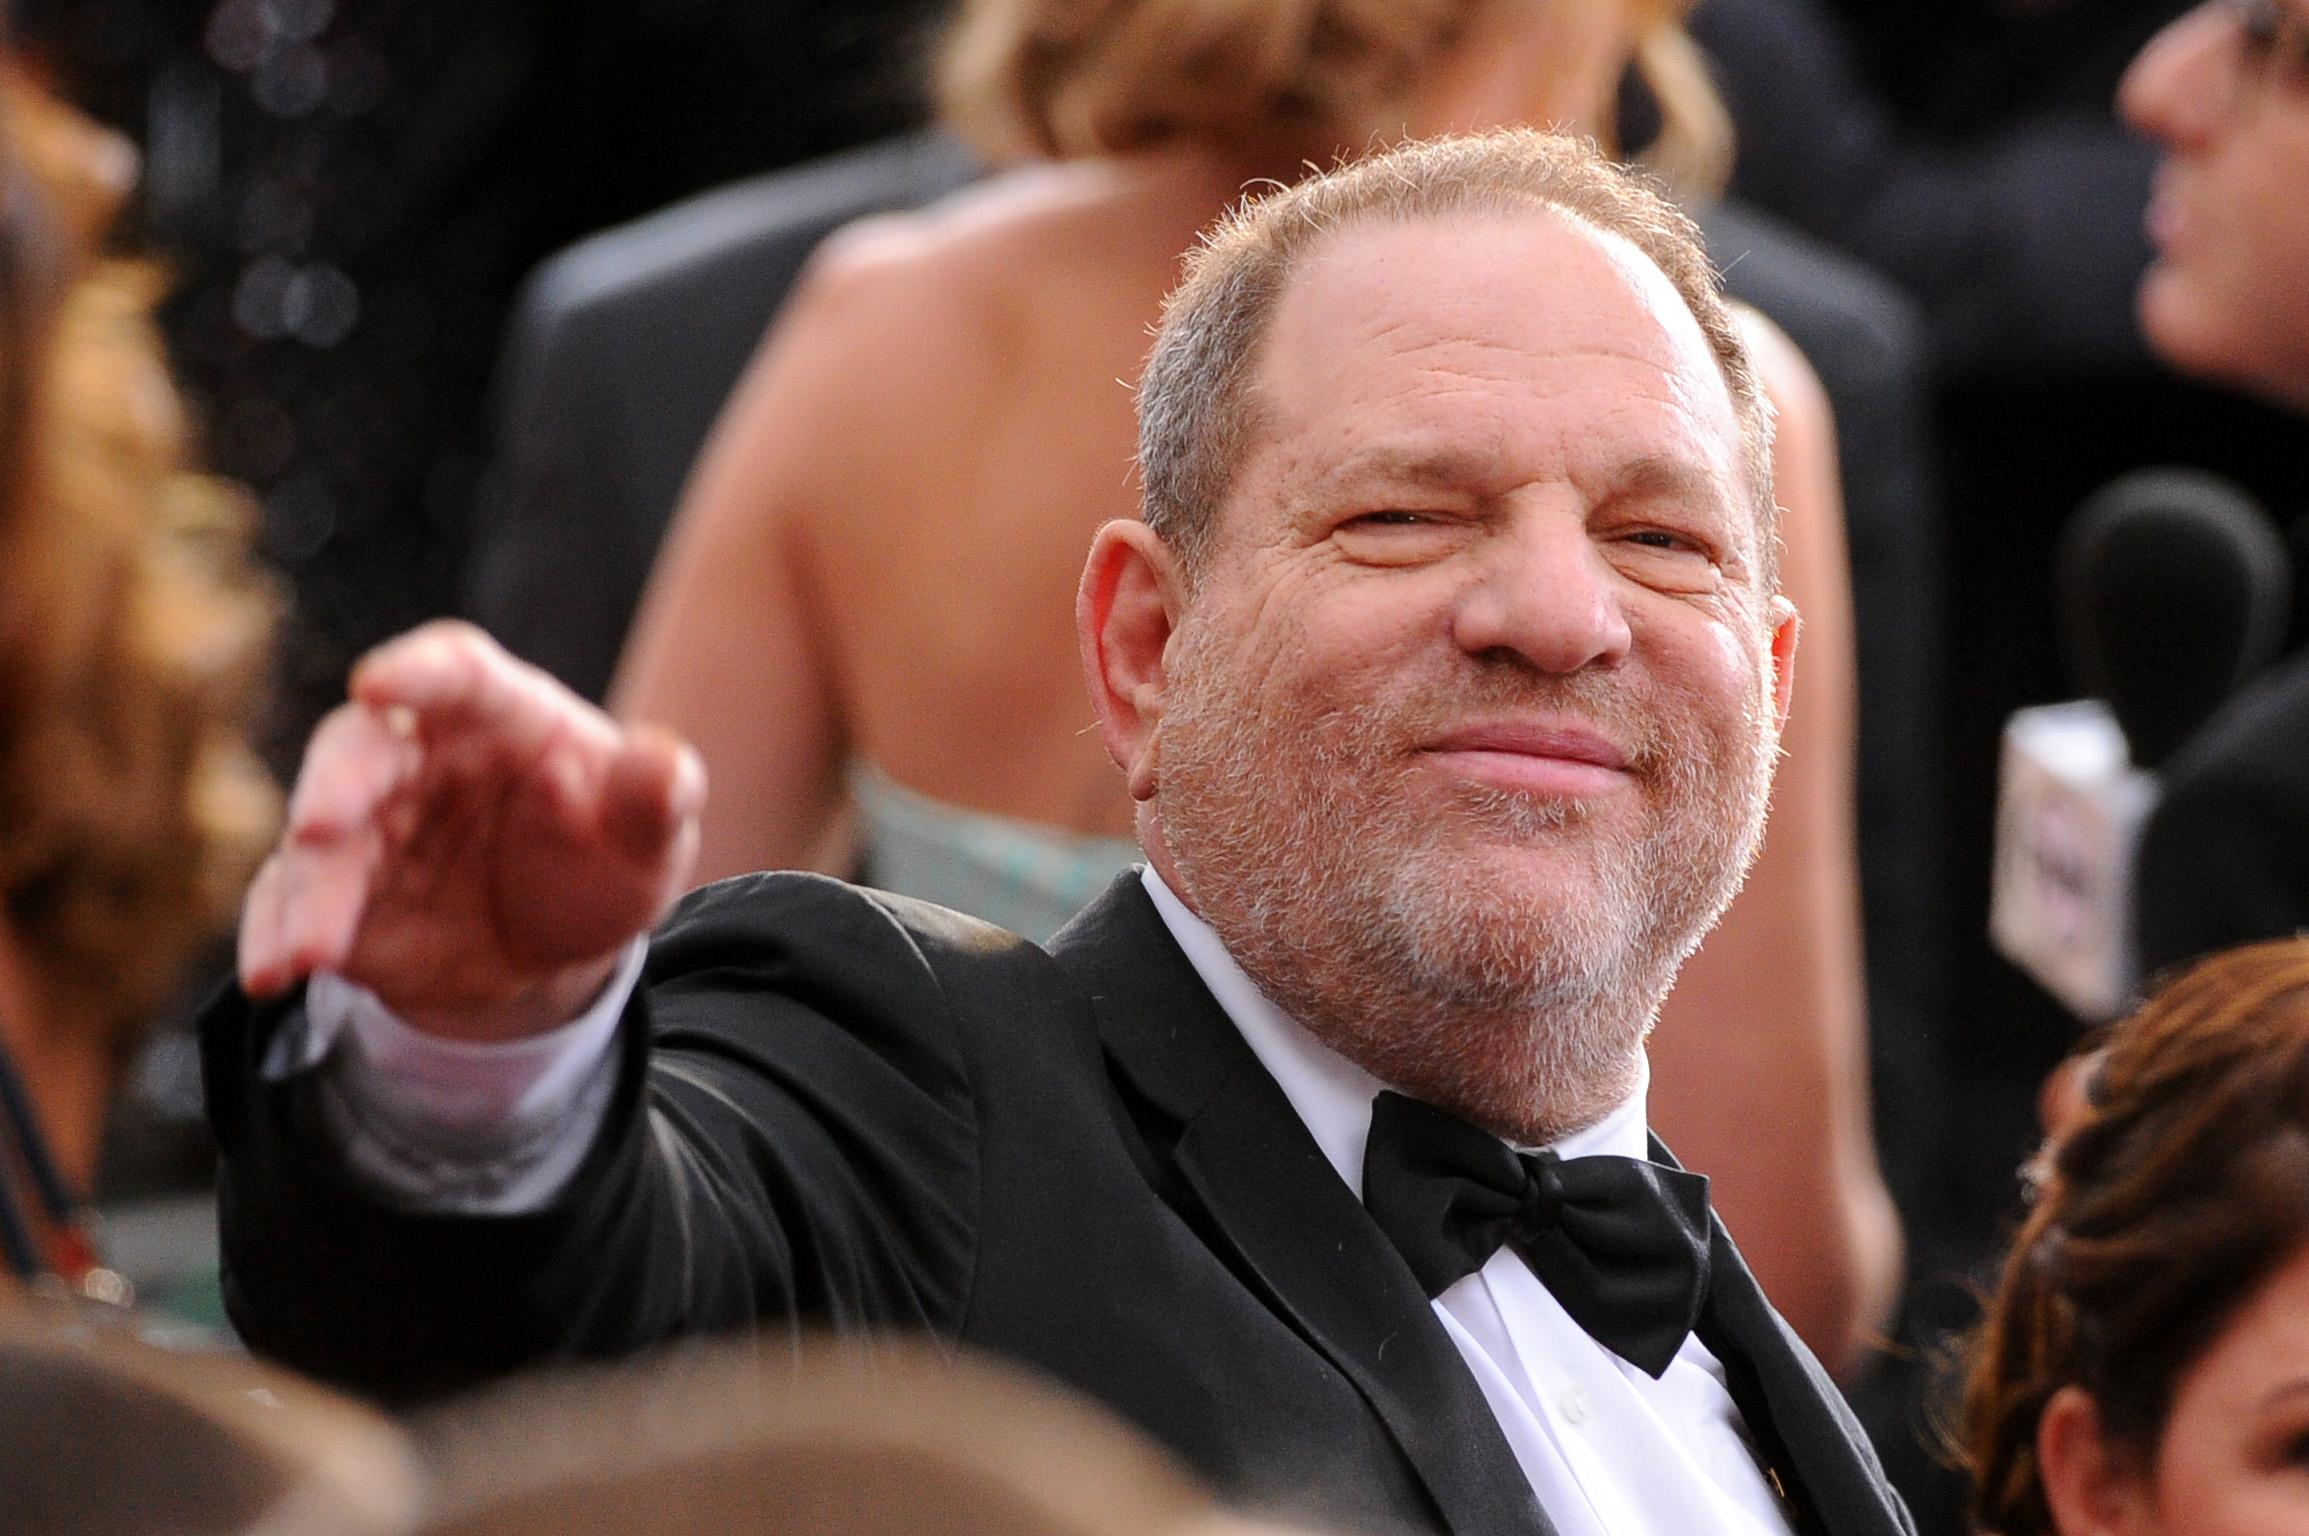 Harvey Weinstein faced decades of sexual harassment allegations